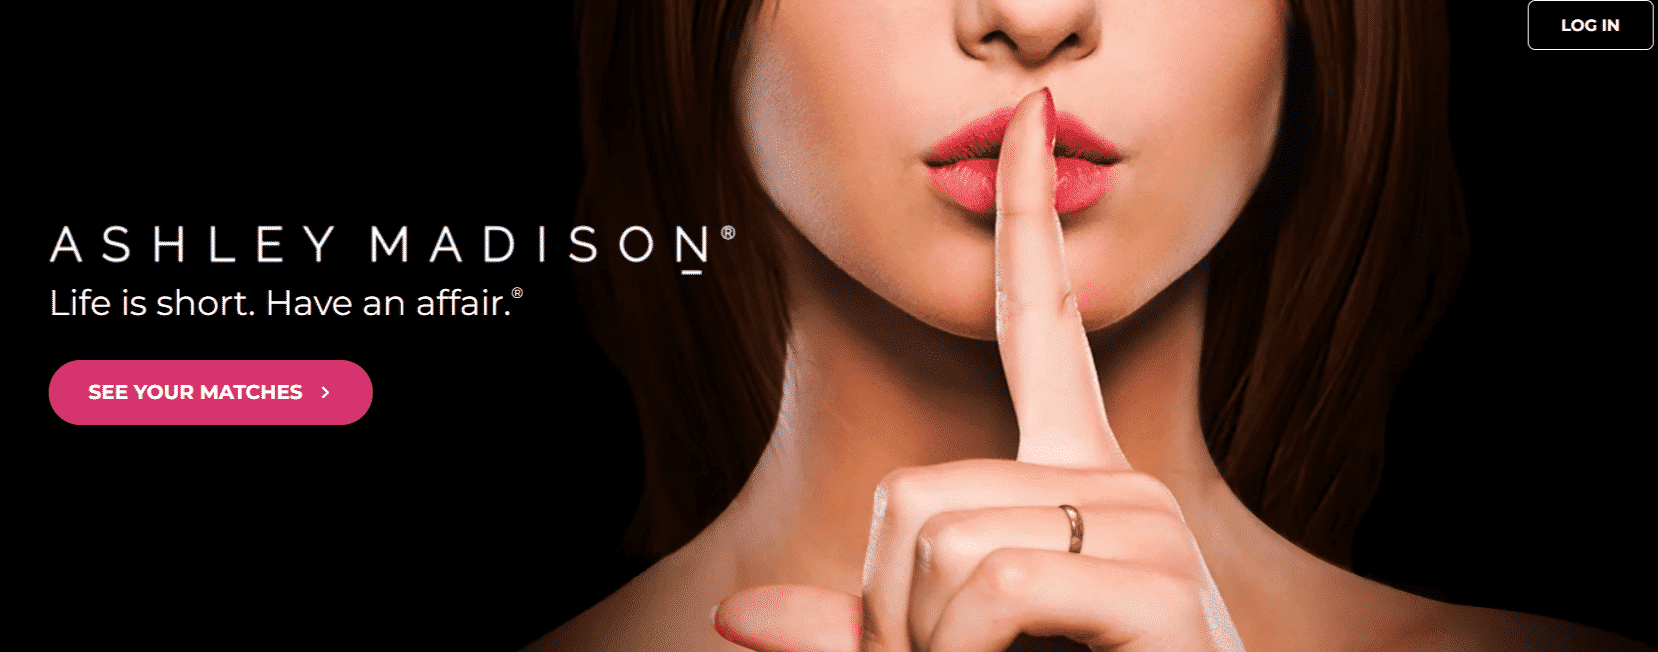 How to Message on Ashley Madison Without Paying